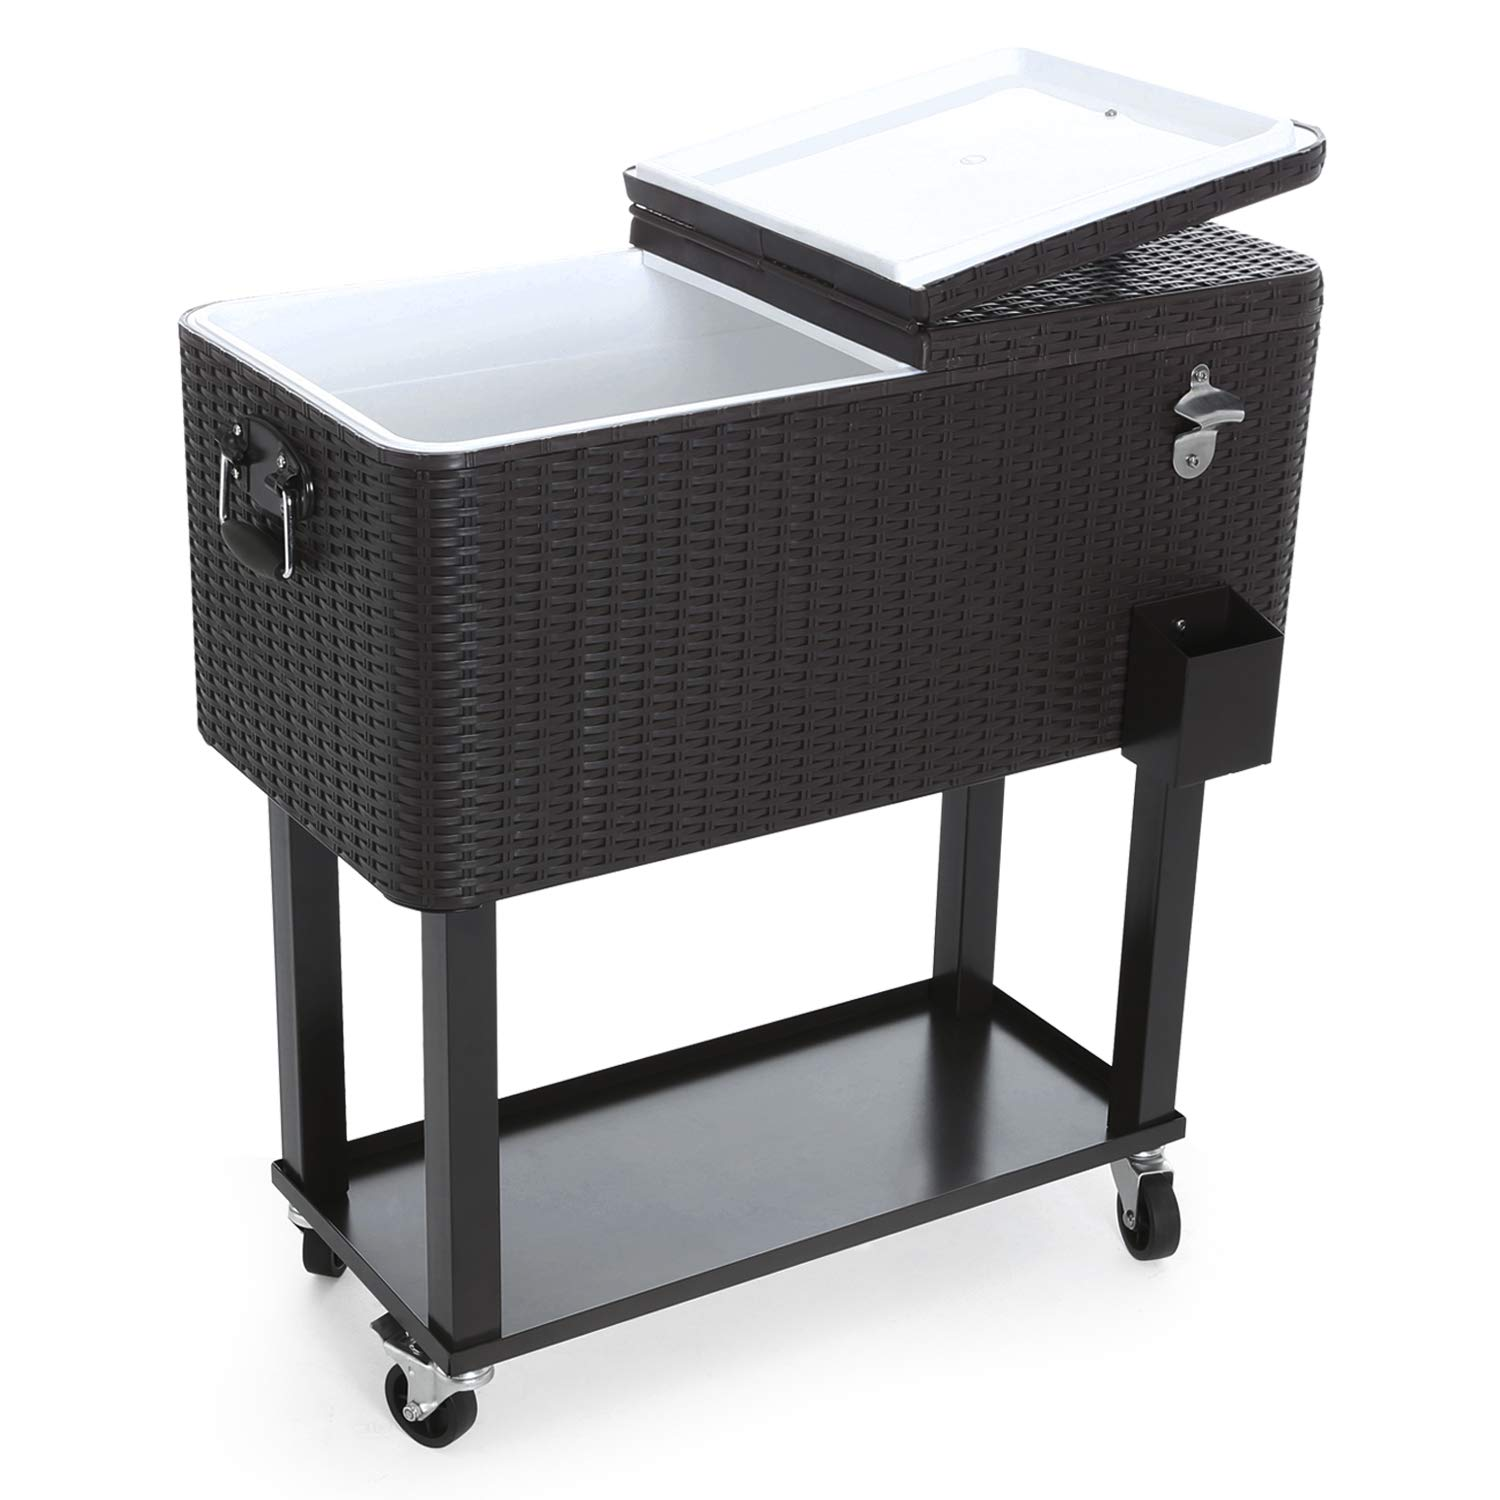 CAIDE-STORE with a Free Cover 80 Quart Outdoor Portable Cooler Patio Ice Chest Cooler Cart on Wheel